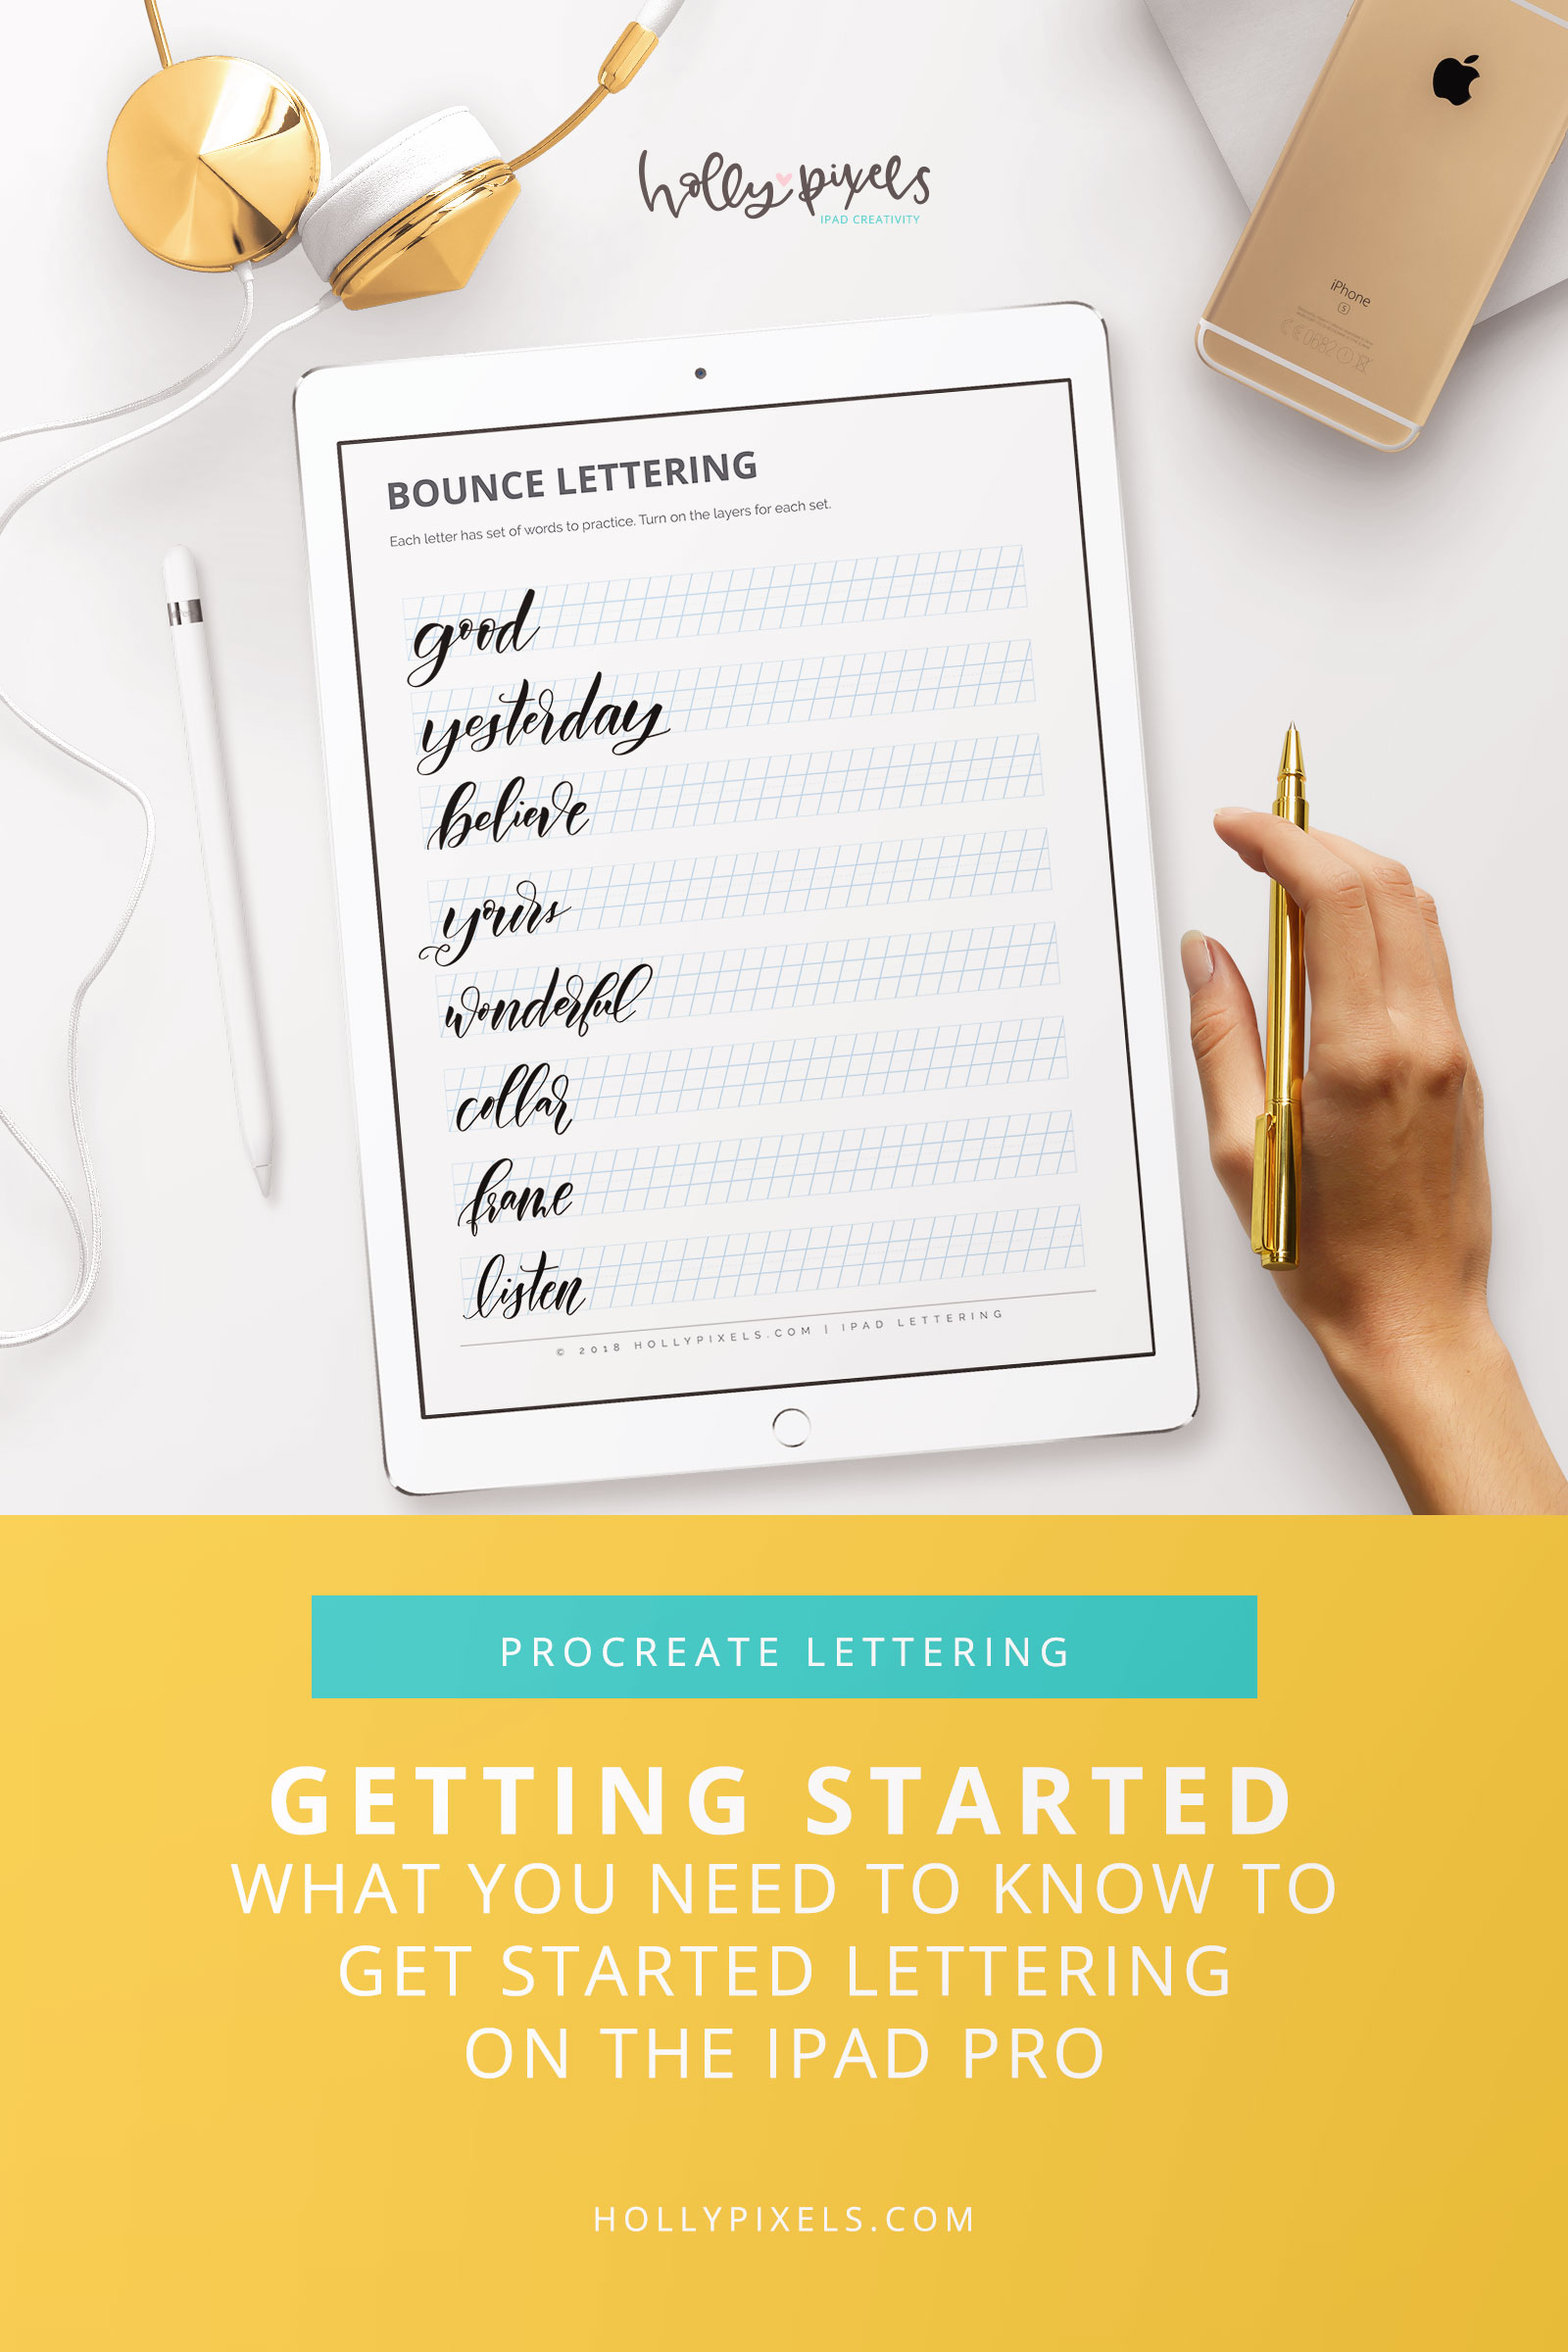 If you're ready to get started with lettering on the iPad Pro this post will achieve your goal. Lettering is something that takes time, practice and lots of consistency no matter what medium you use. Whether you choose to letter with pens and paper or the iPad Pro, there are certain tools you need to master lettering.